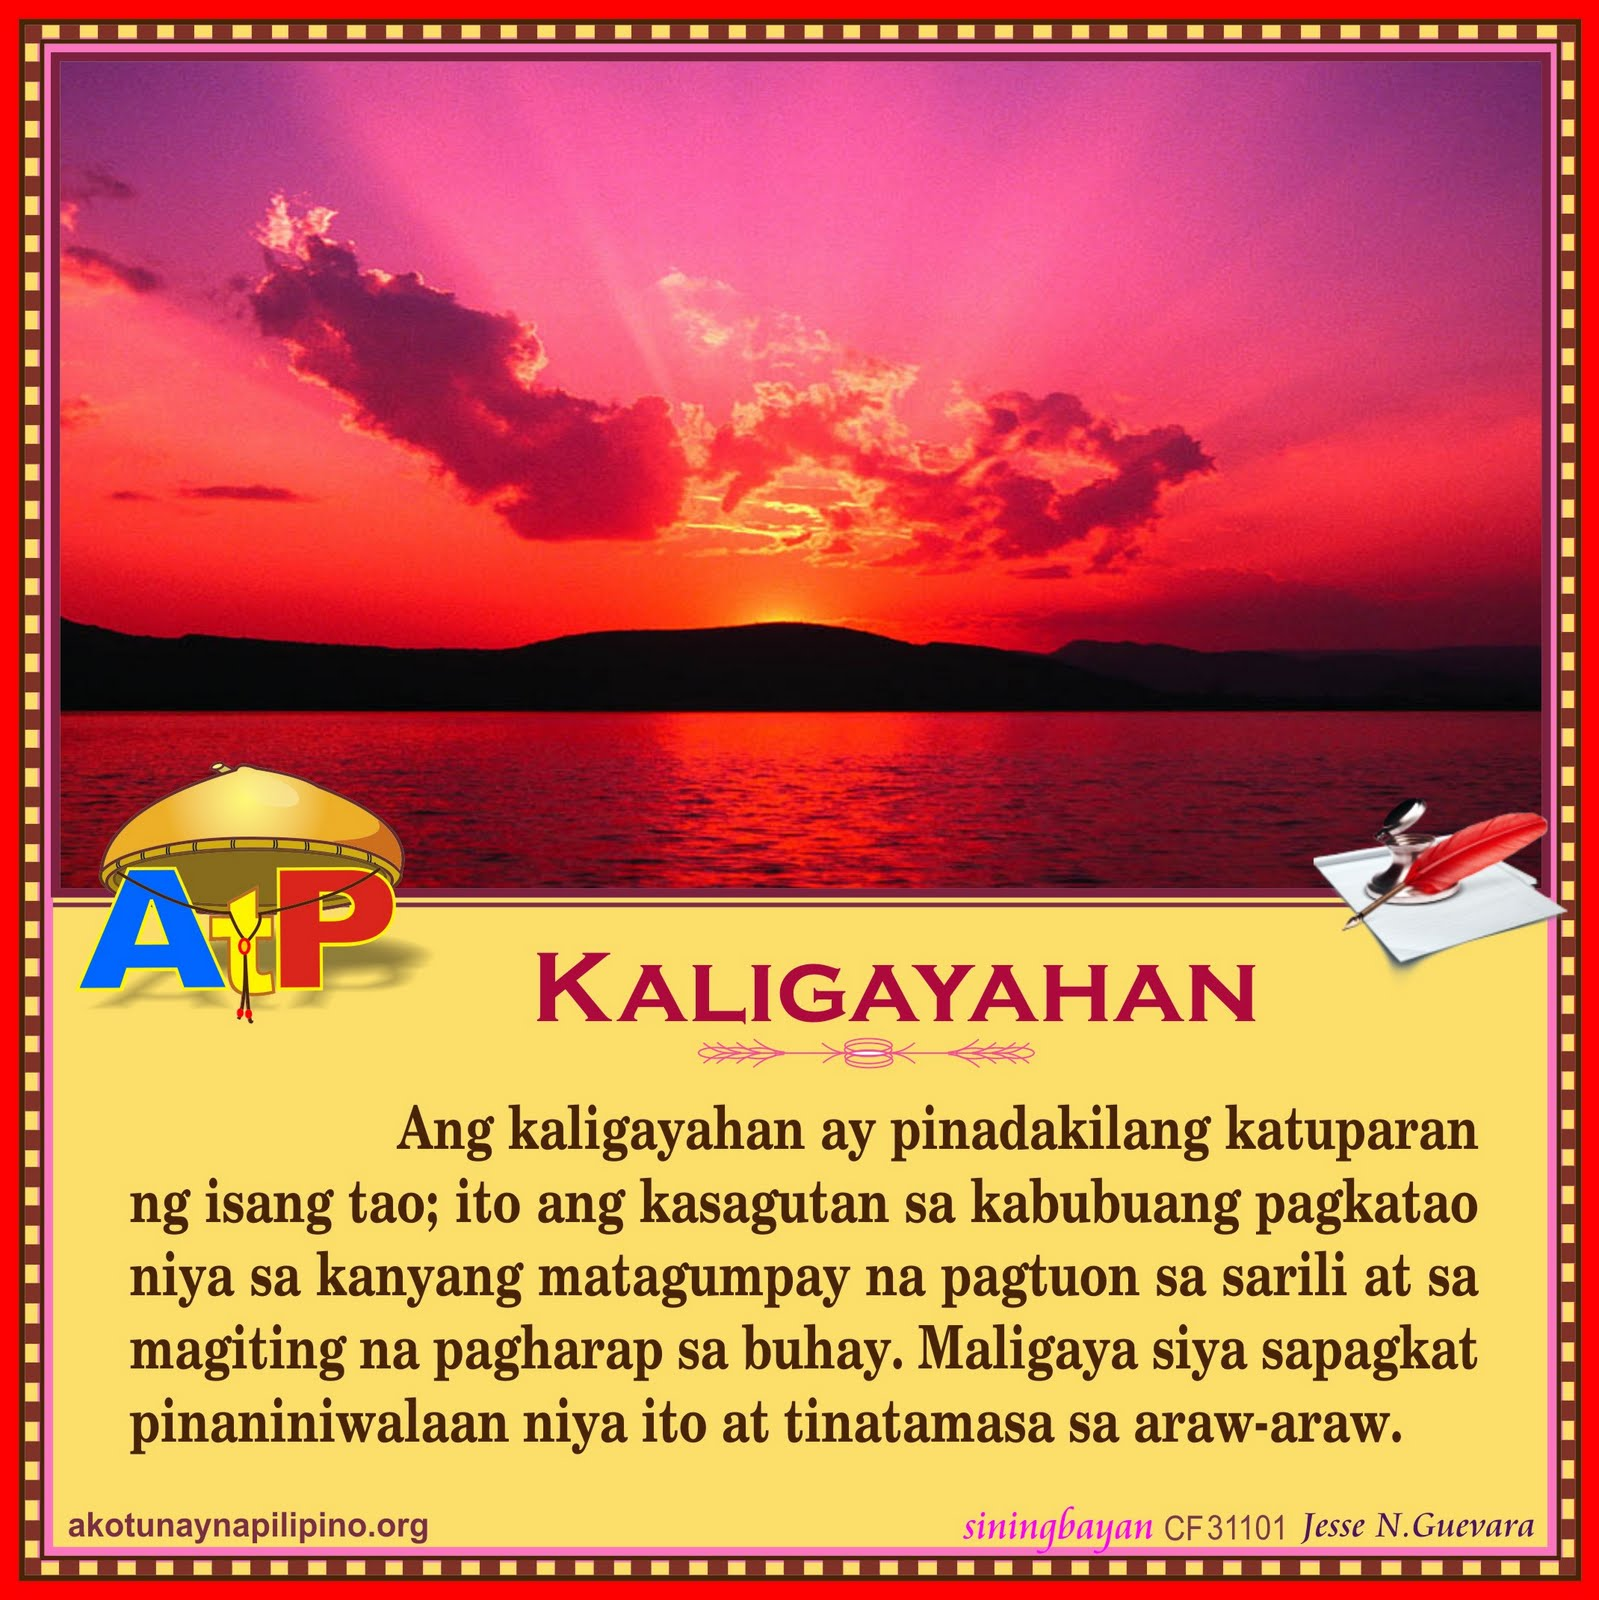 tunay na pilipino essay Read this essay on pantawid pamilyang pilipino come browse our large digital warehouse of free sample essays get the knowledge you need in order to pass your classes and more pilipino ano ang isang tunay na pilipino sa dagat ng mga.